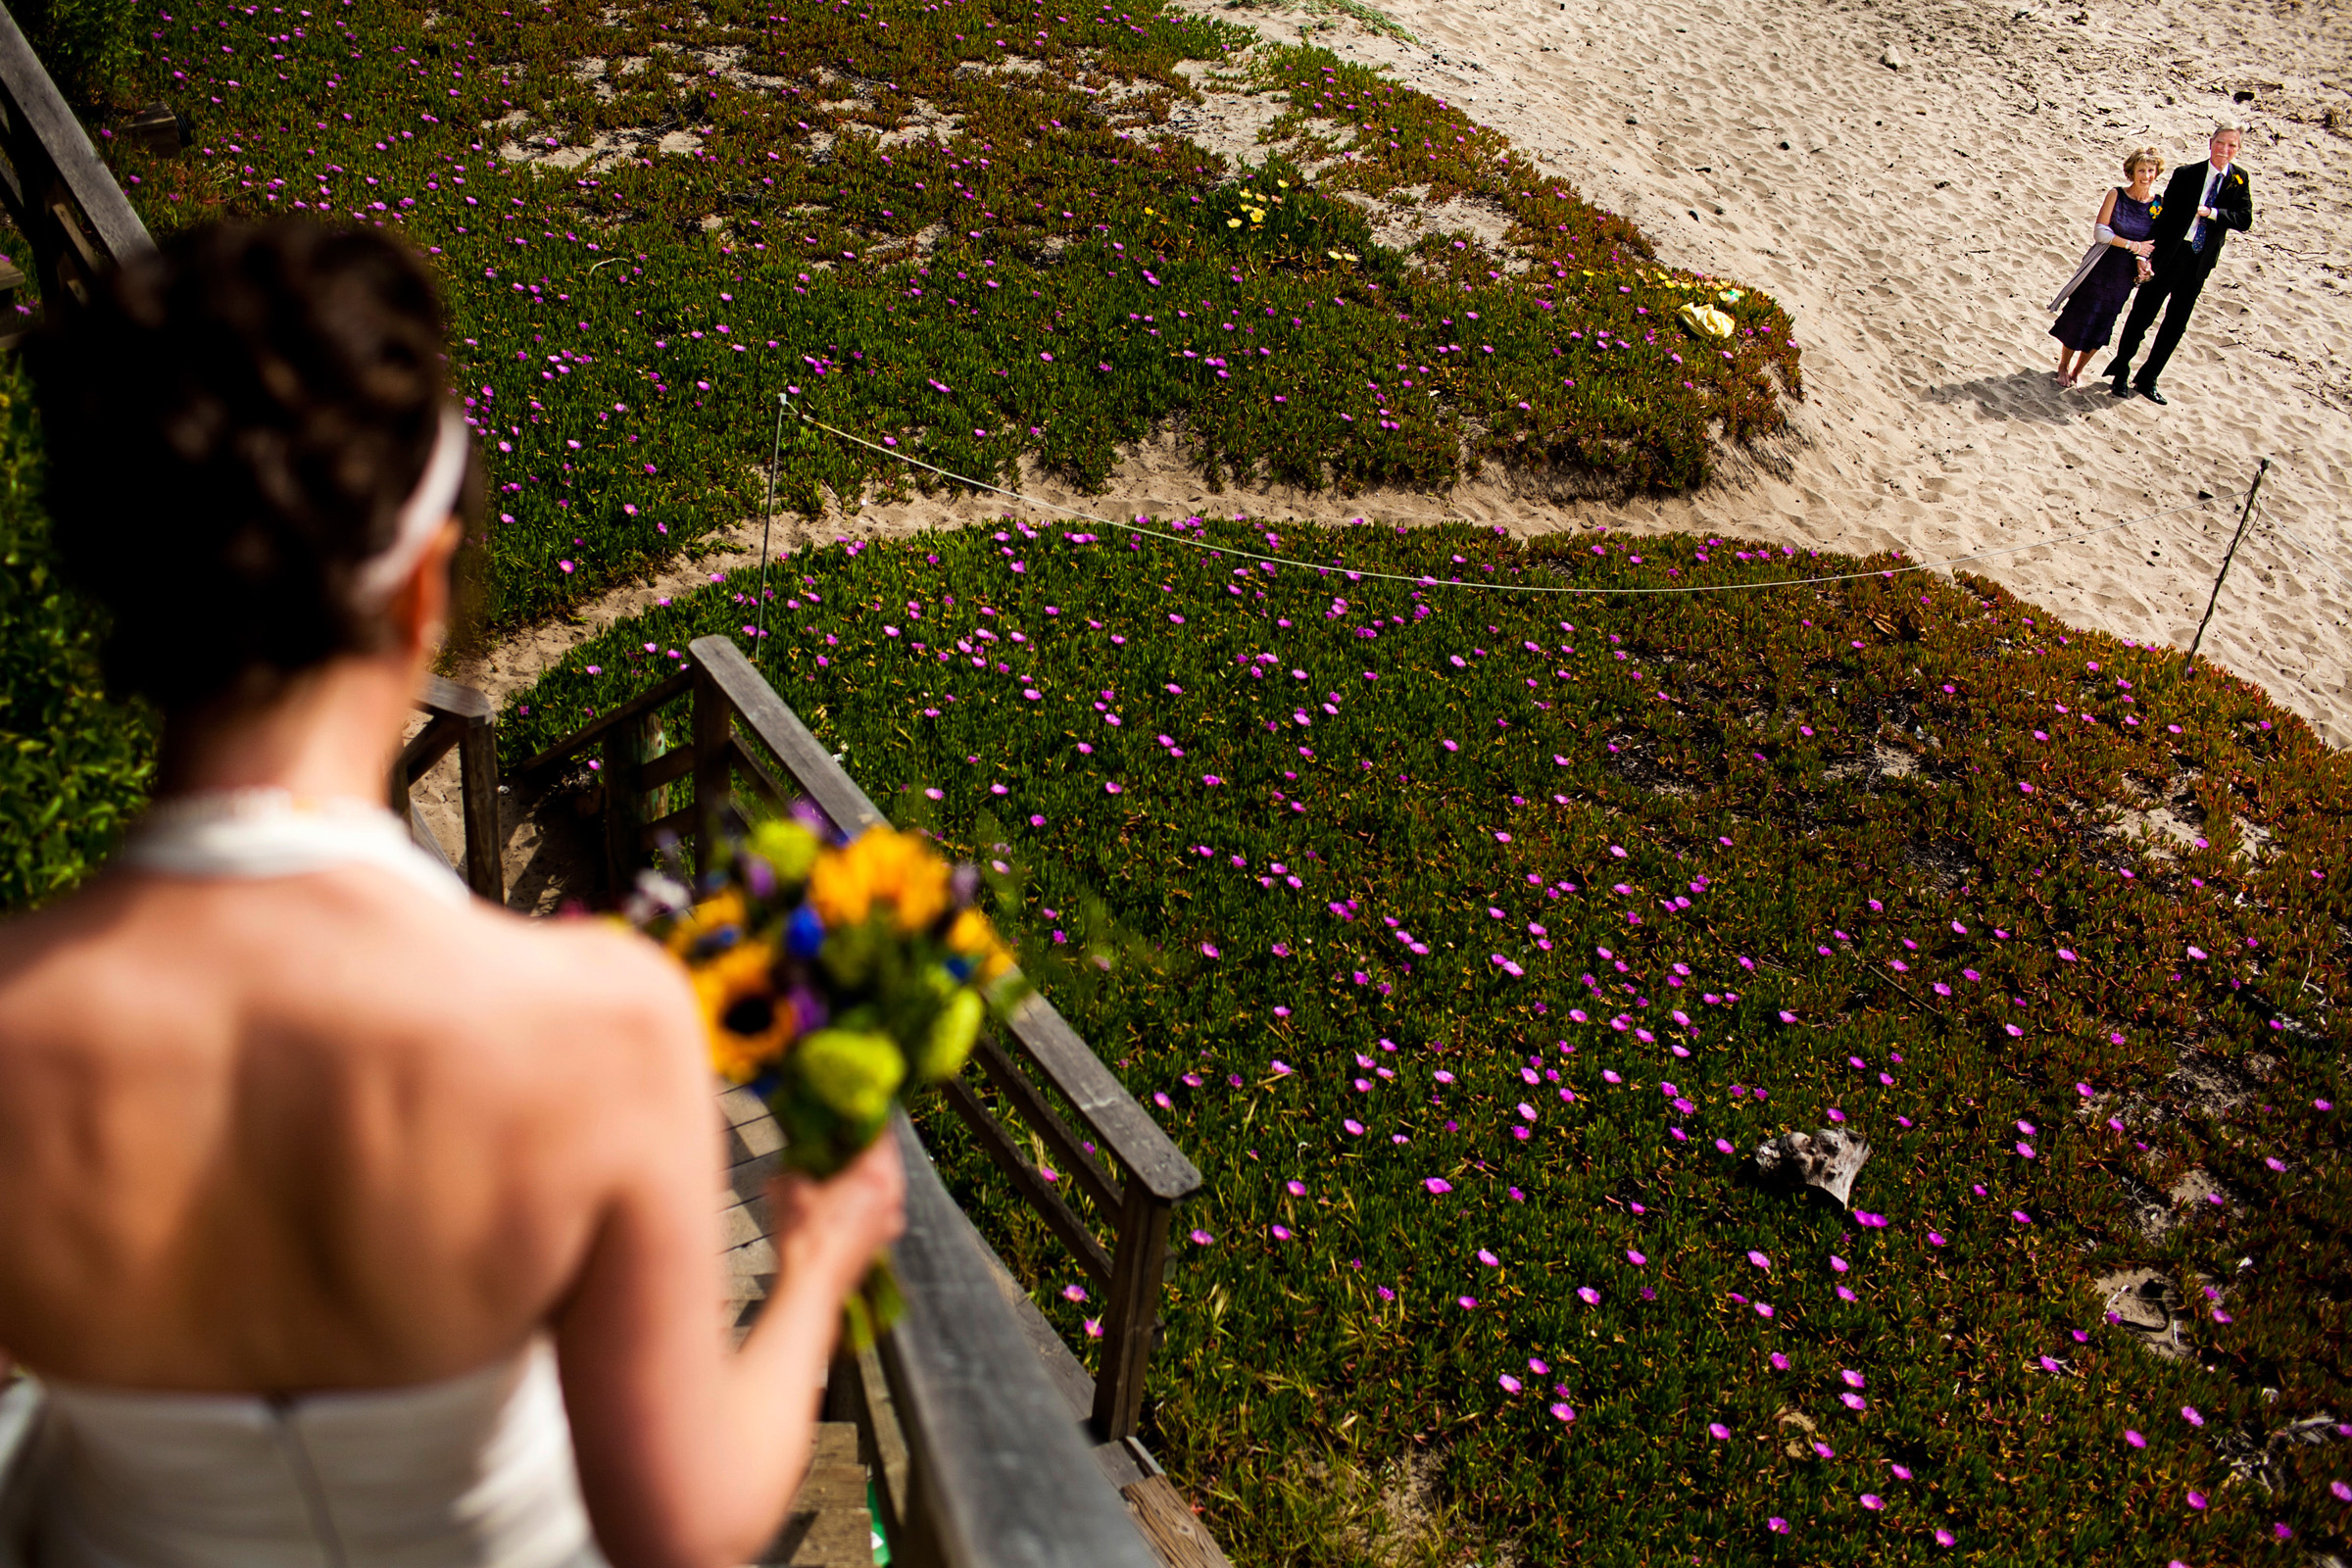 Parents look as bride walk down steps - photo by Chrisman Studios